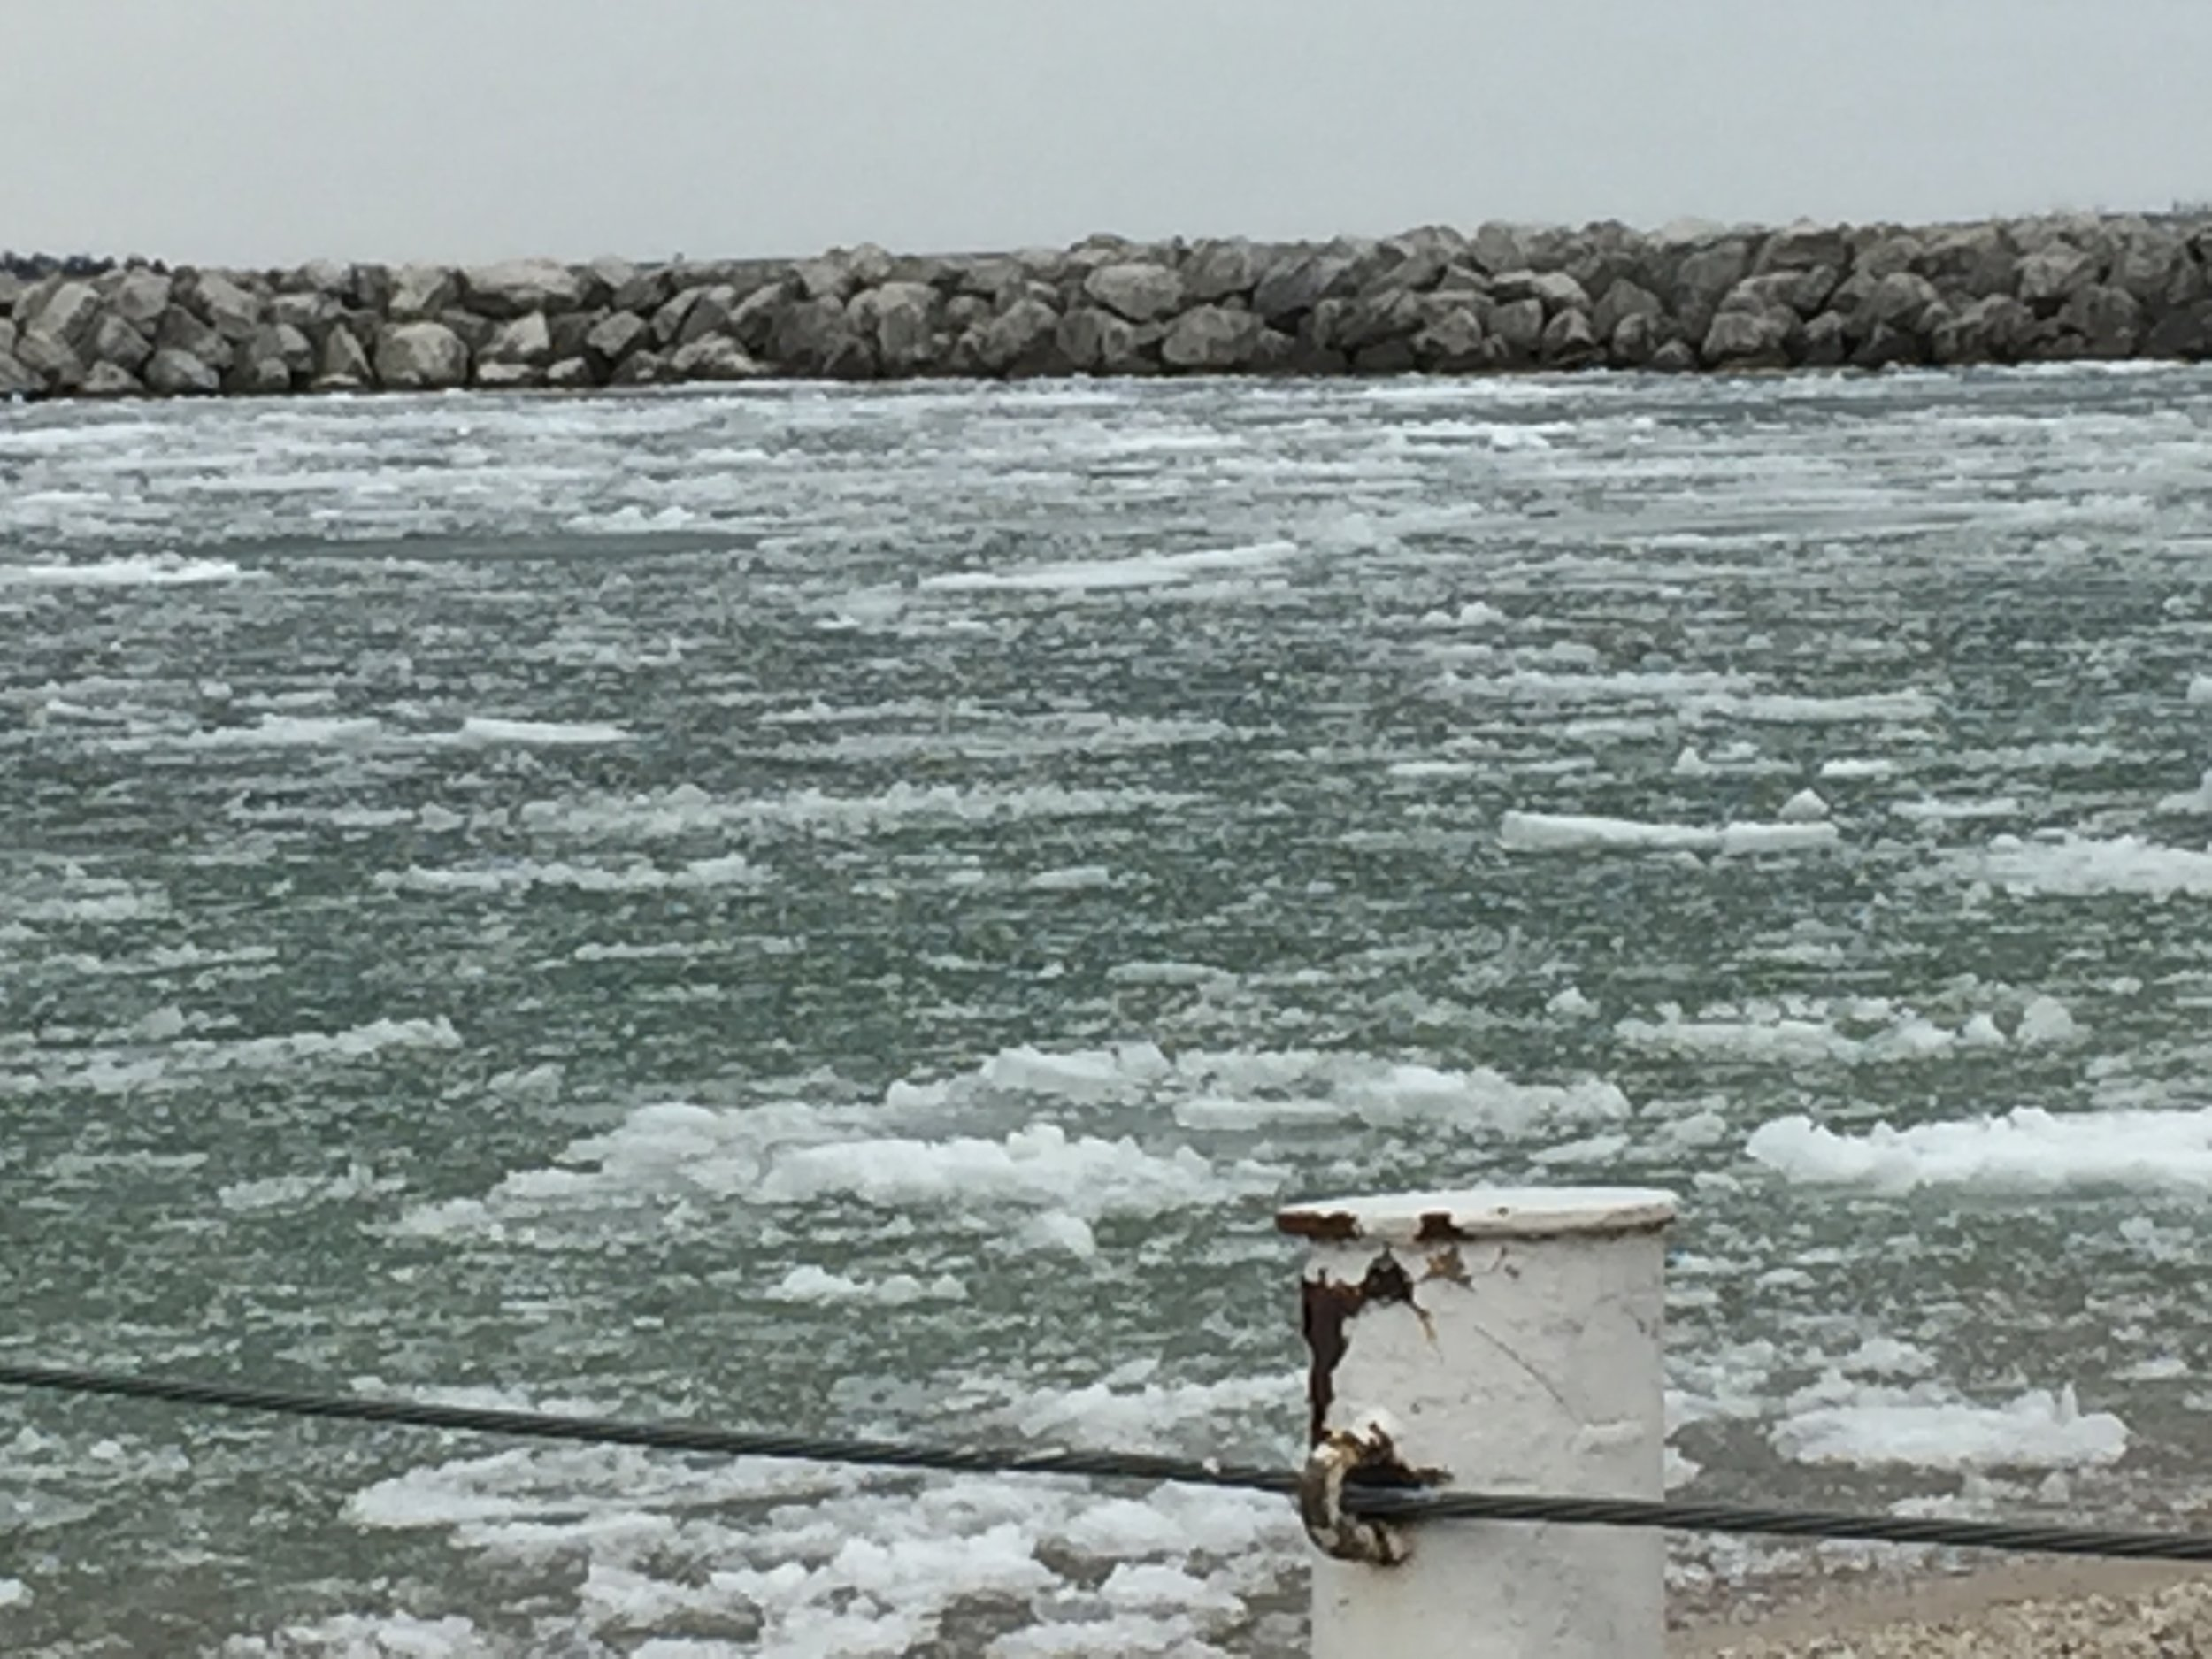 April 10 - On arrival @ Northport, a little deteriorating ice remains.